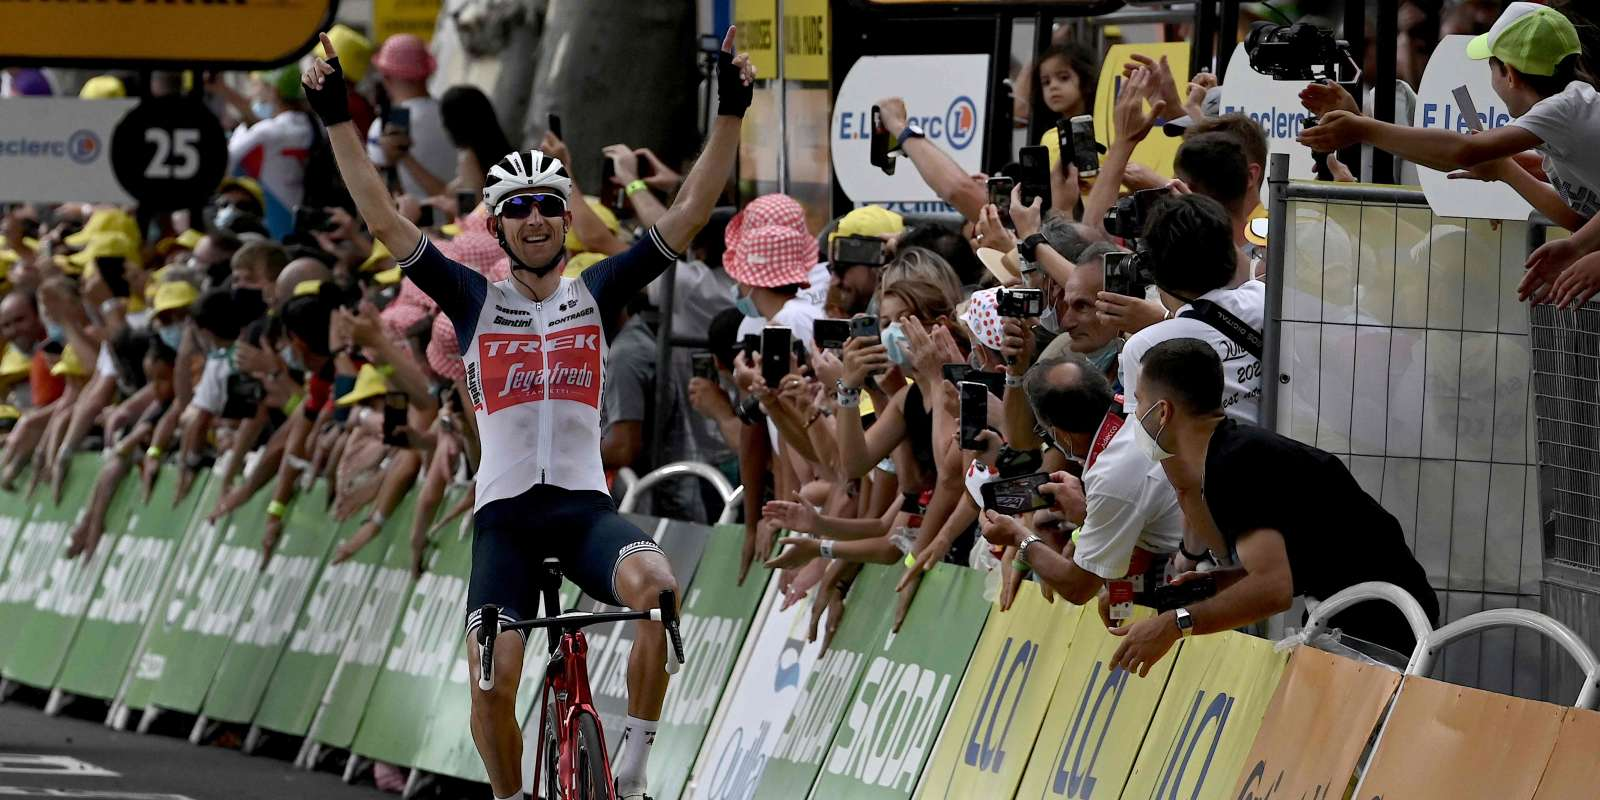 Team Trek Segafredo's Bauke Mollema of Netherlands celebrates as he crosses the finish of the 14th stage of the 108th edition of the Tour de France cycling race, 183 km between Carcassonne and Quillan, on July 10, 2021. / AFP / Philippe LOPEZ